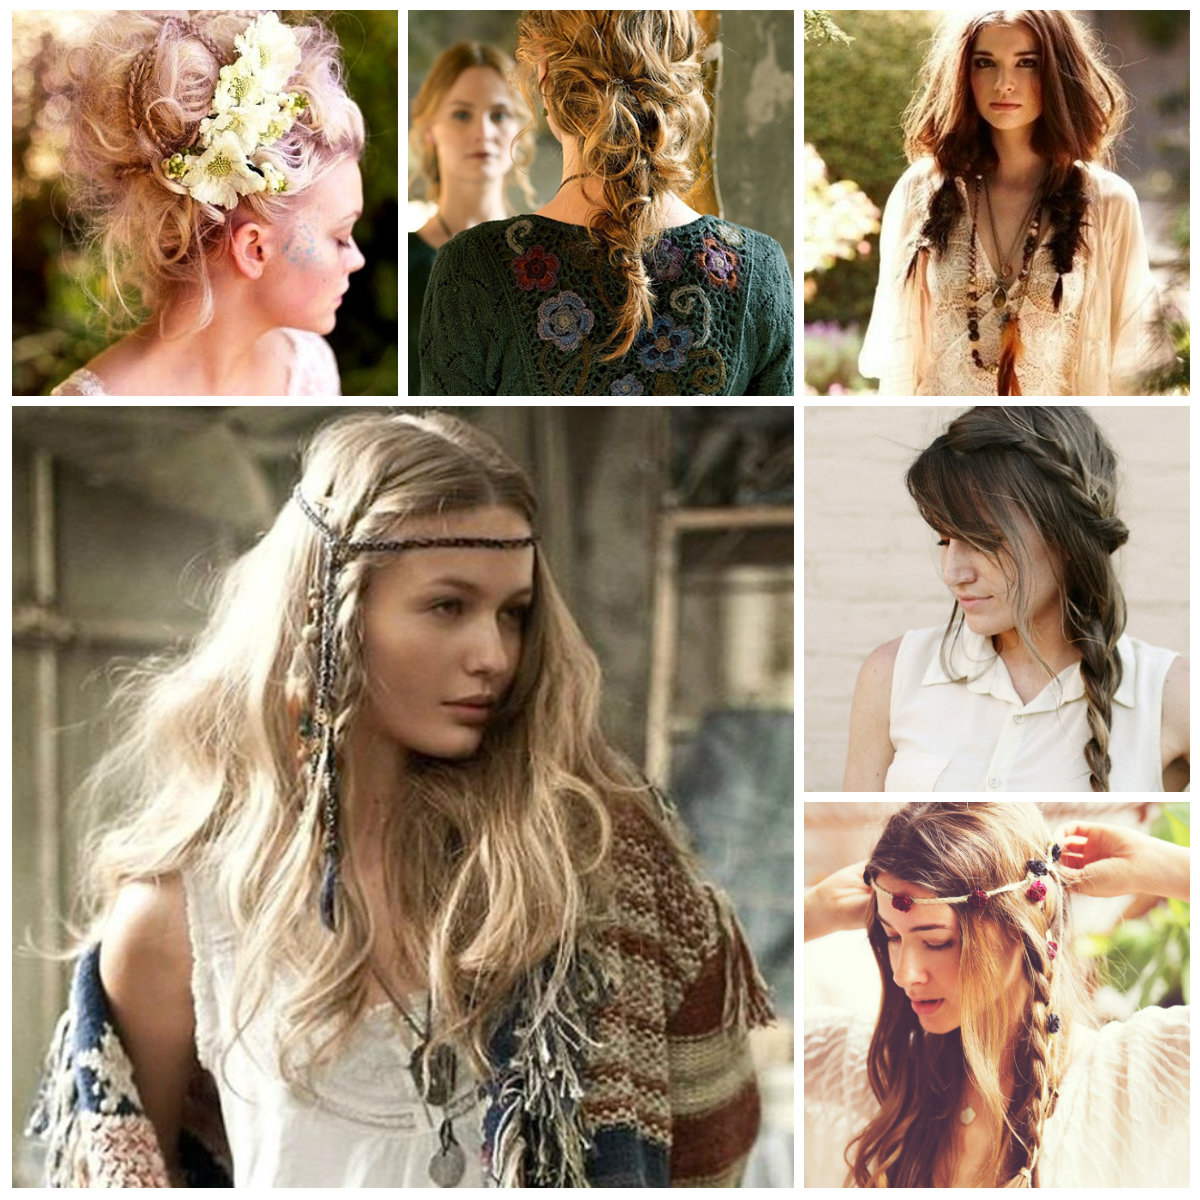 Messy Bohemian Hairstyles | Hairstyles For Women 2019, Haircuts For Inside Bohemian Short Hairstyles (View 3 of 25)